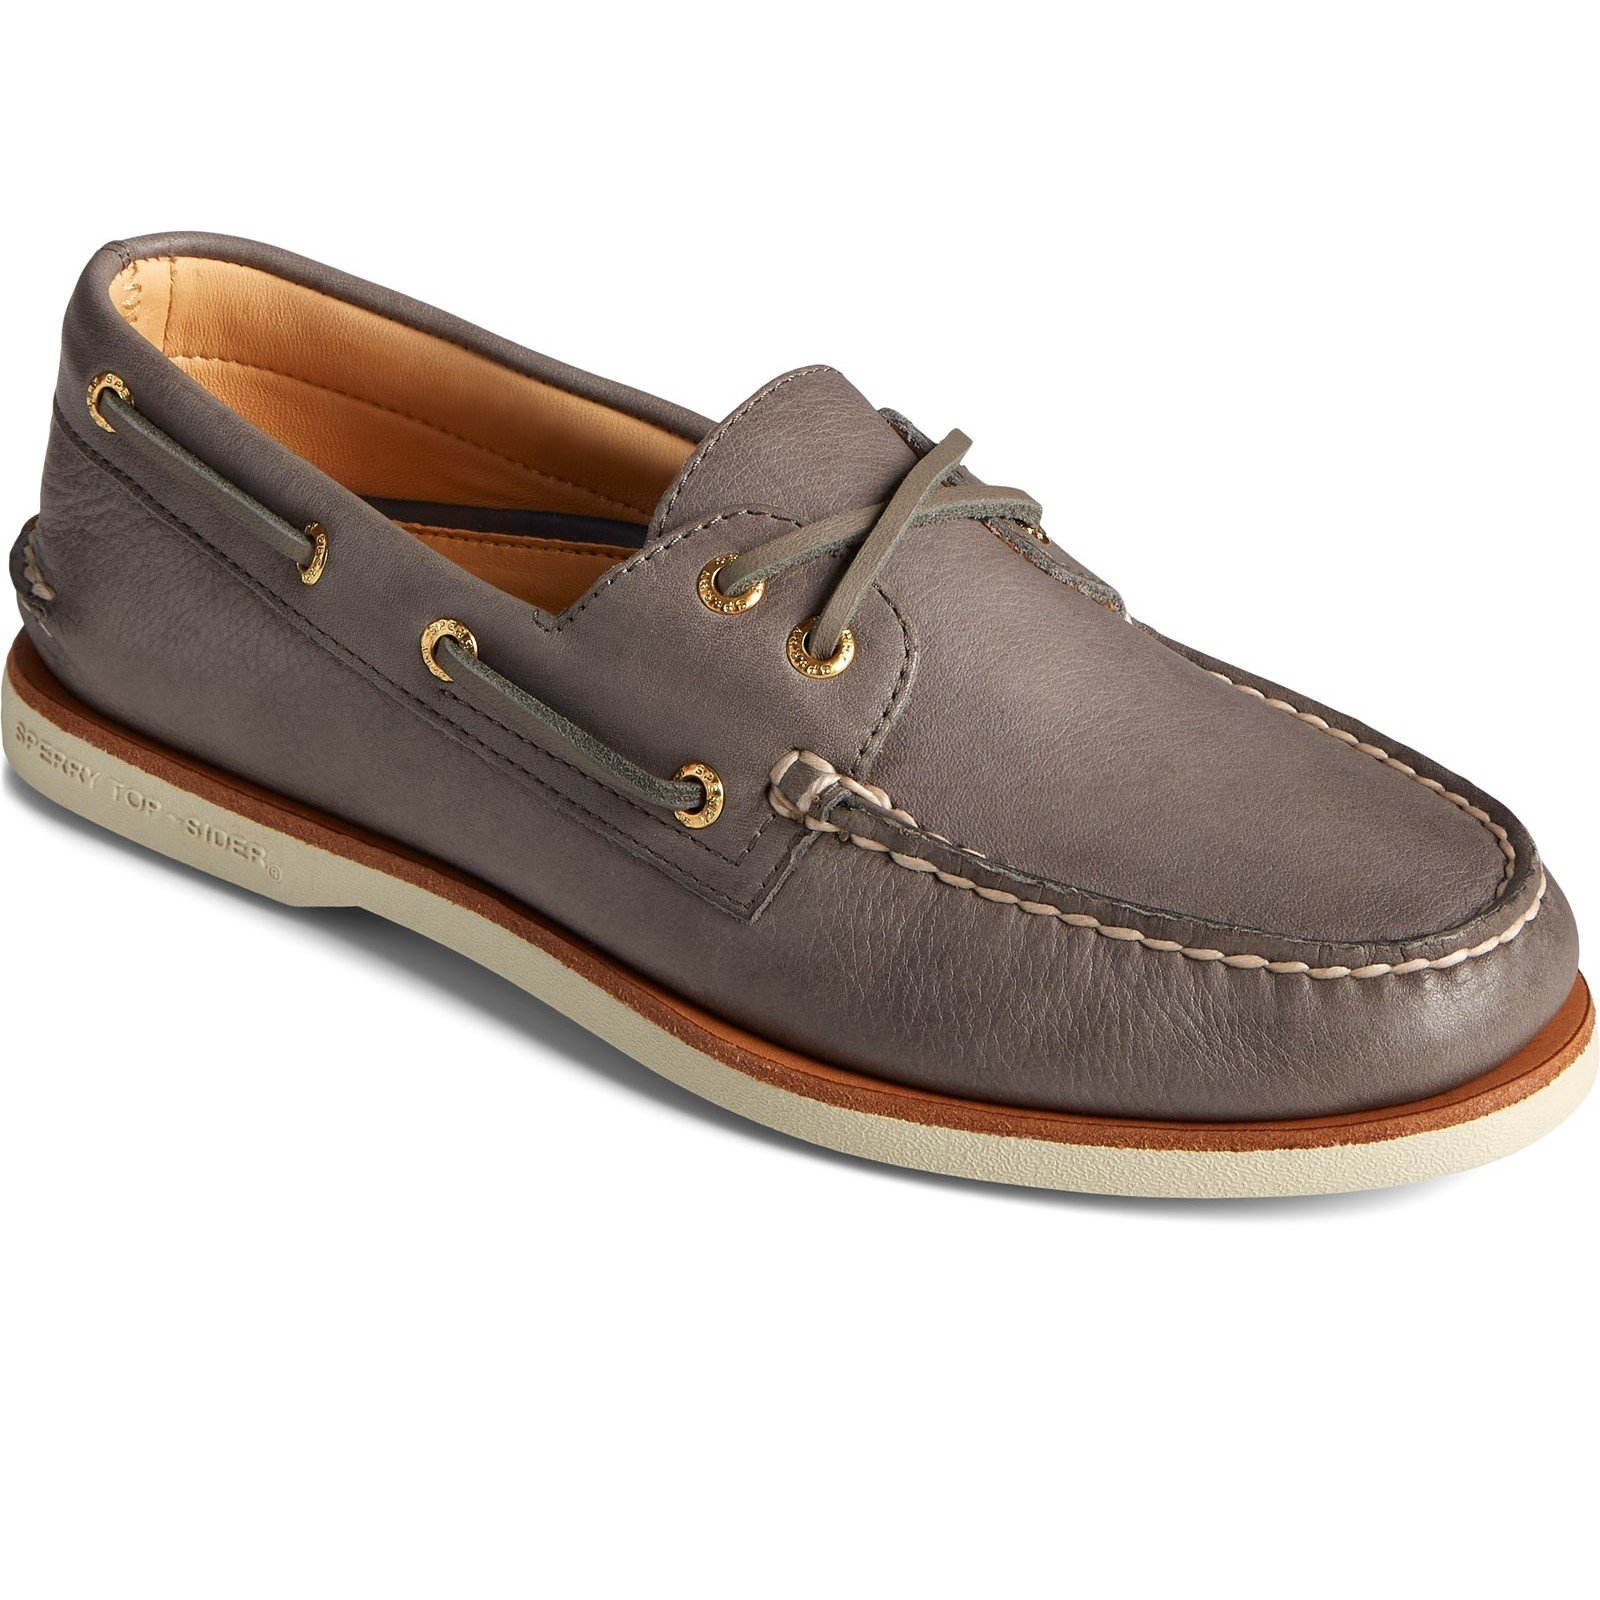 Sperry Men's A/O 2-Eye Boat Shoe Various Colours 32926 - Charcoal 10